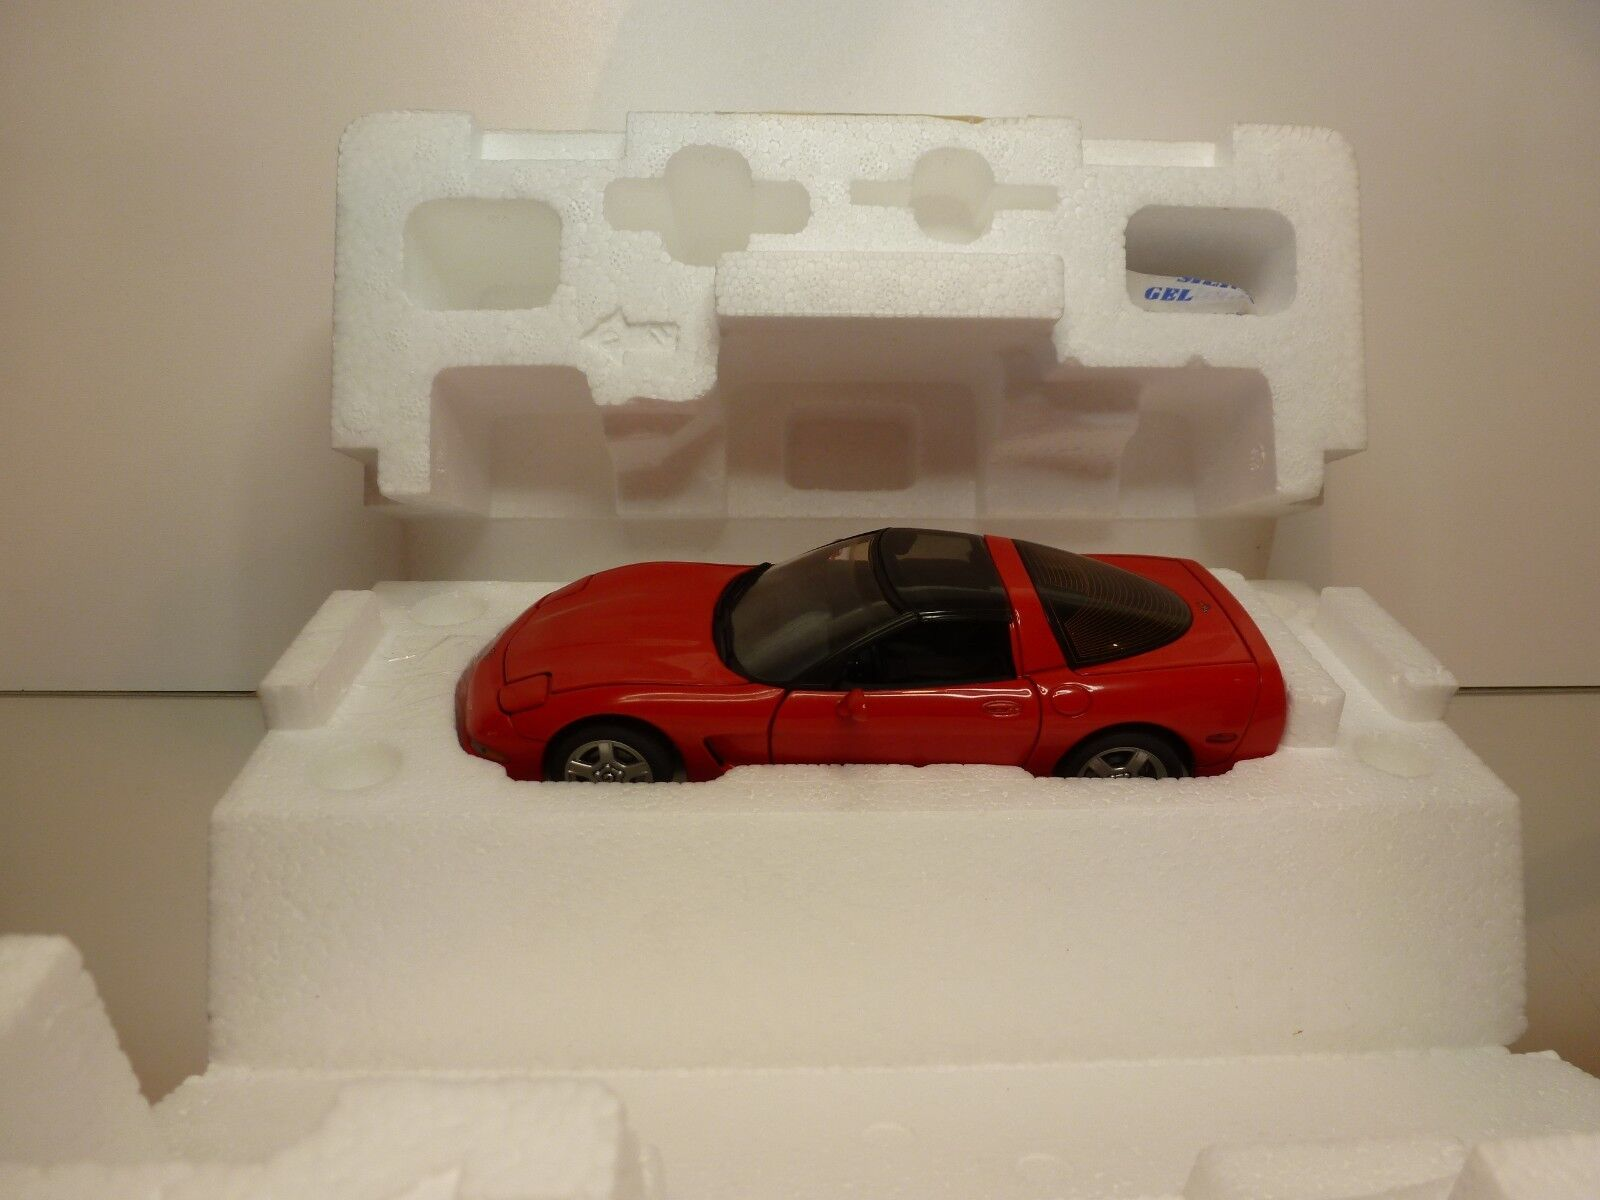 FRANKLIN MINT B11WW95 CHEVROLET CORVETTE 1998 - RED 1 24 - EXCELLENT IN BOX